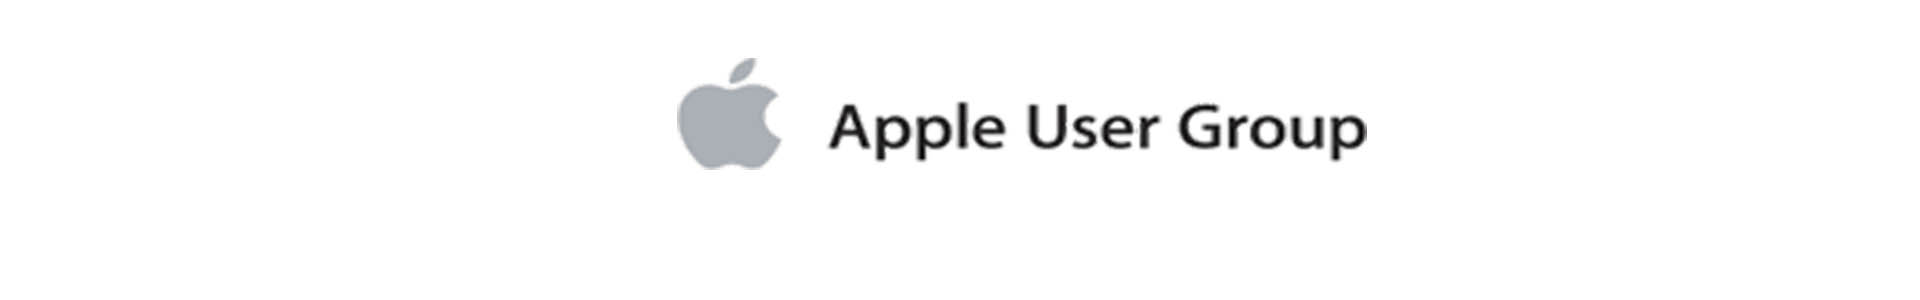 We are an Apple User Group